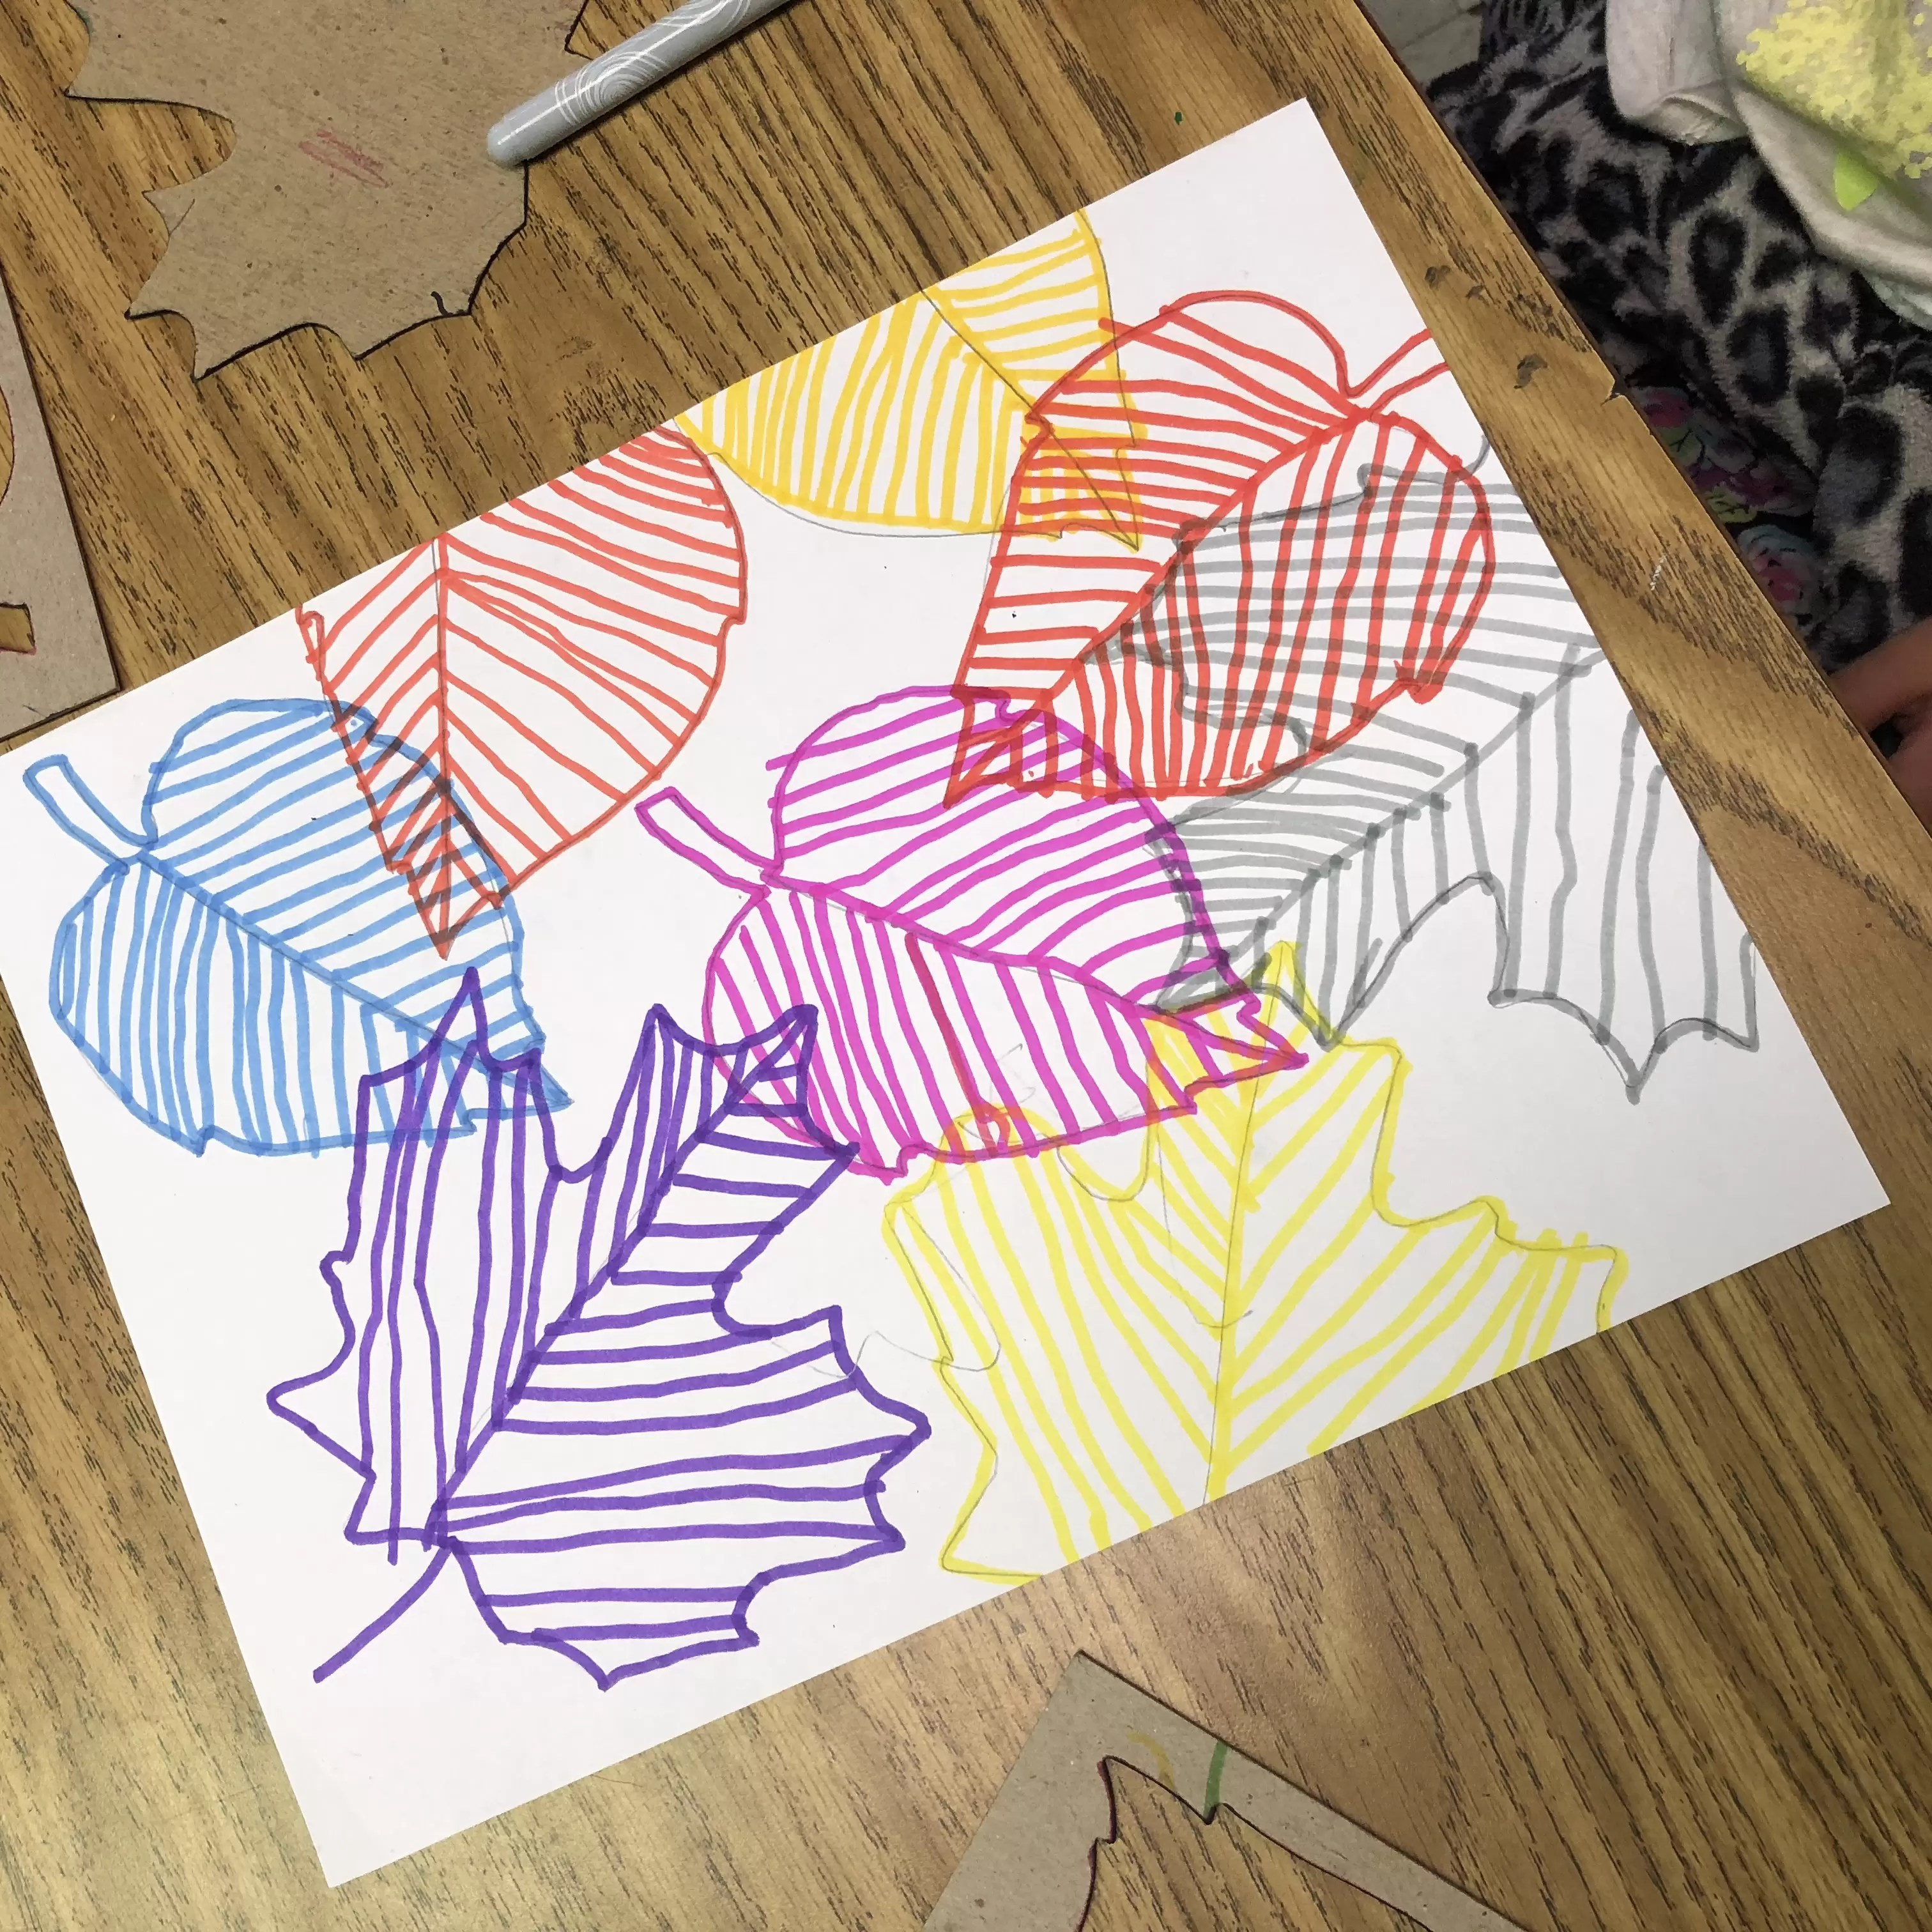 Line Art Project Leaves Art Projects For Kids